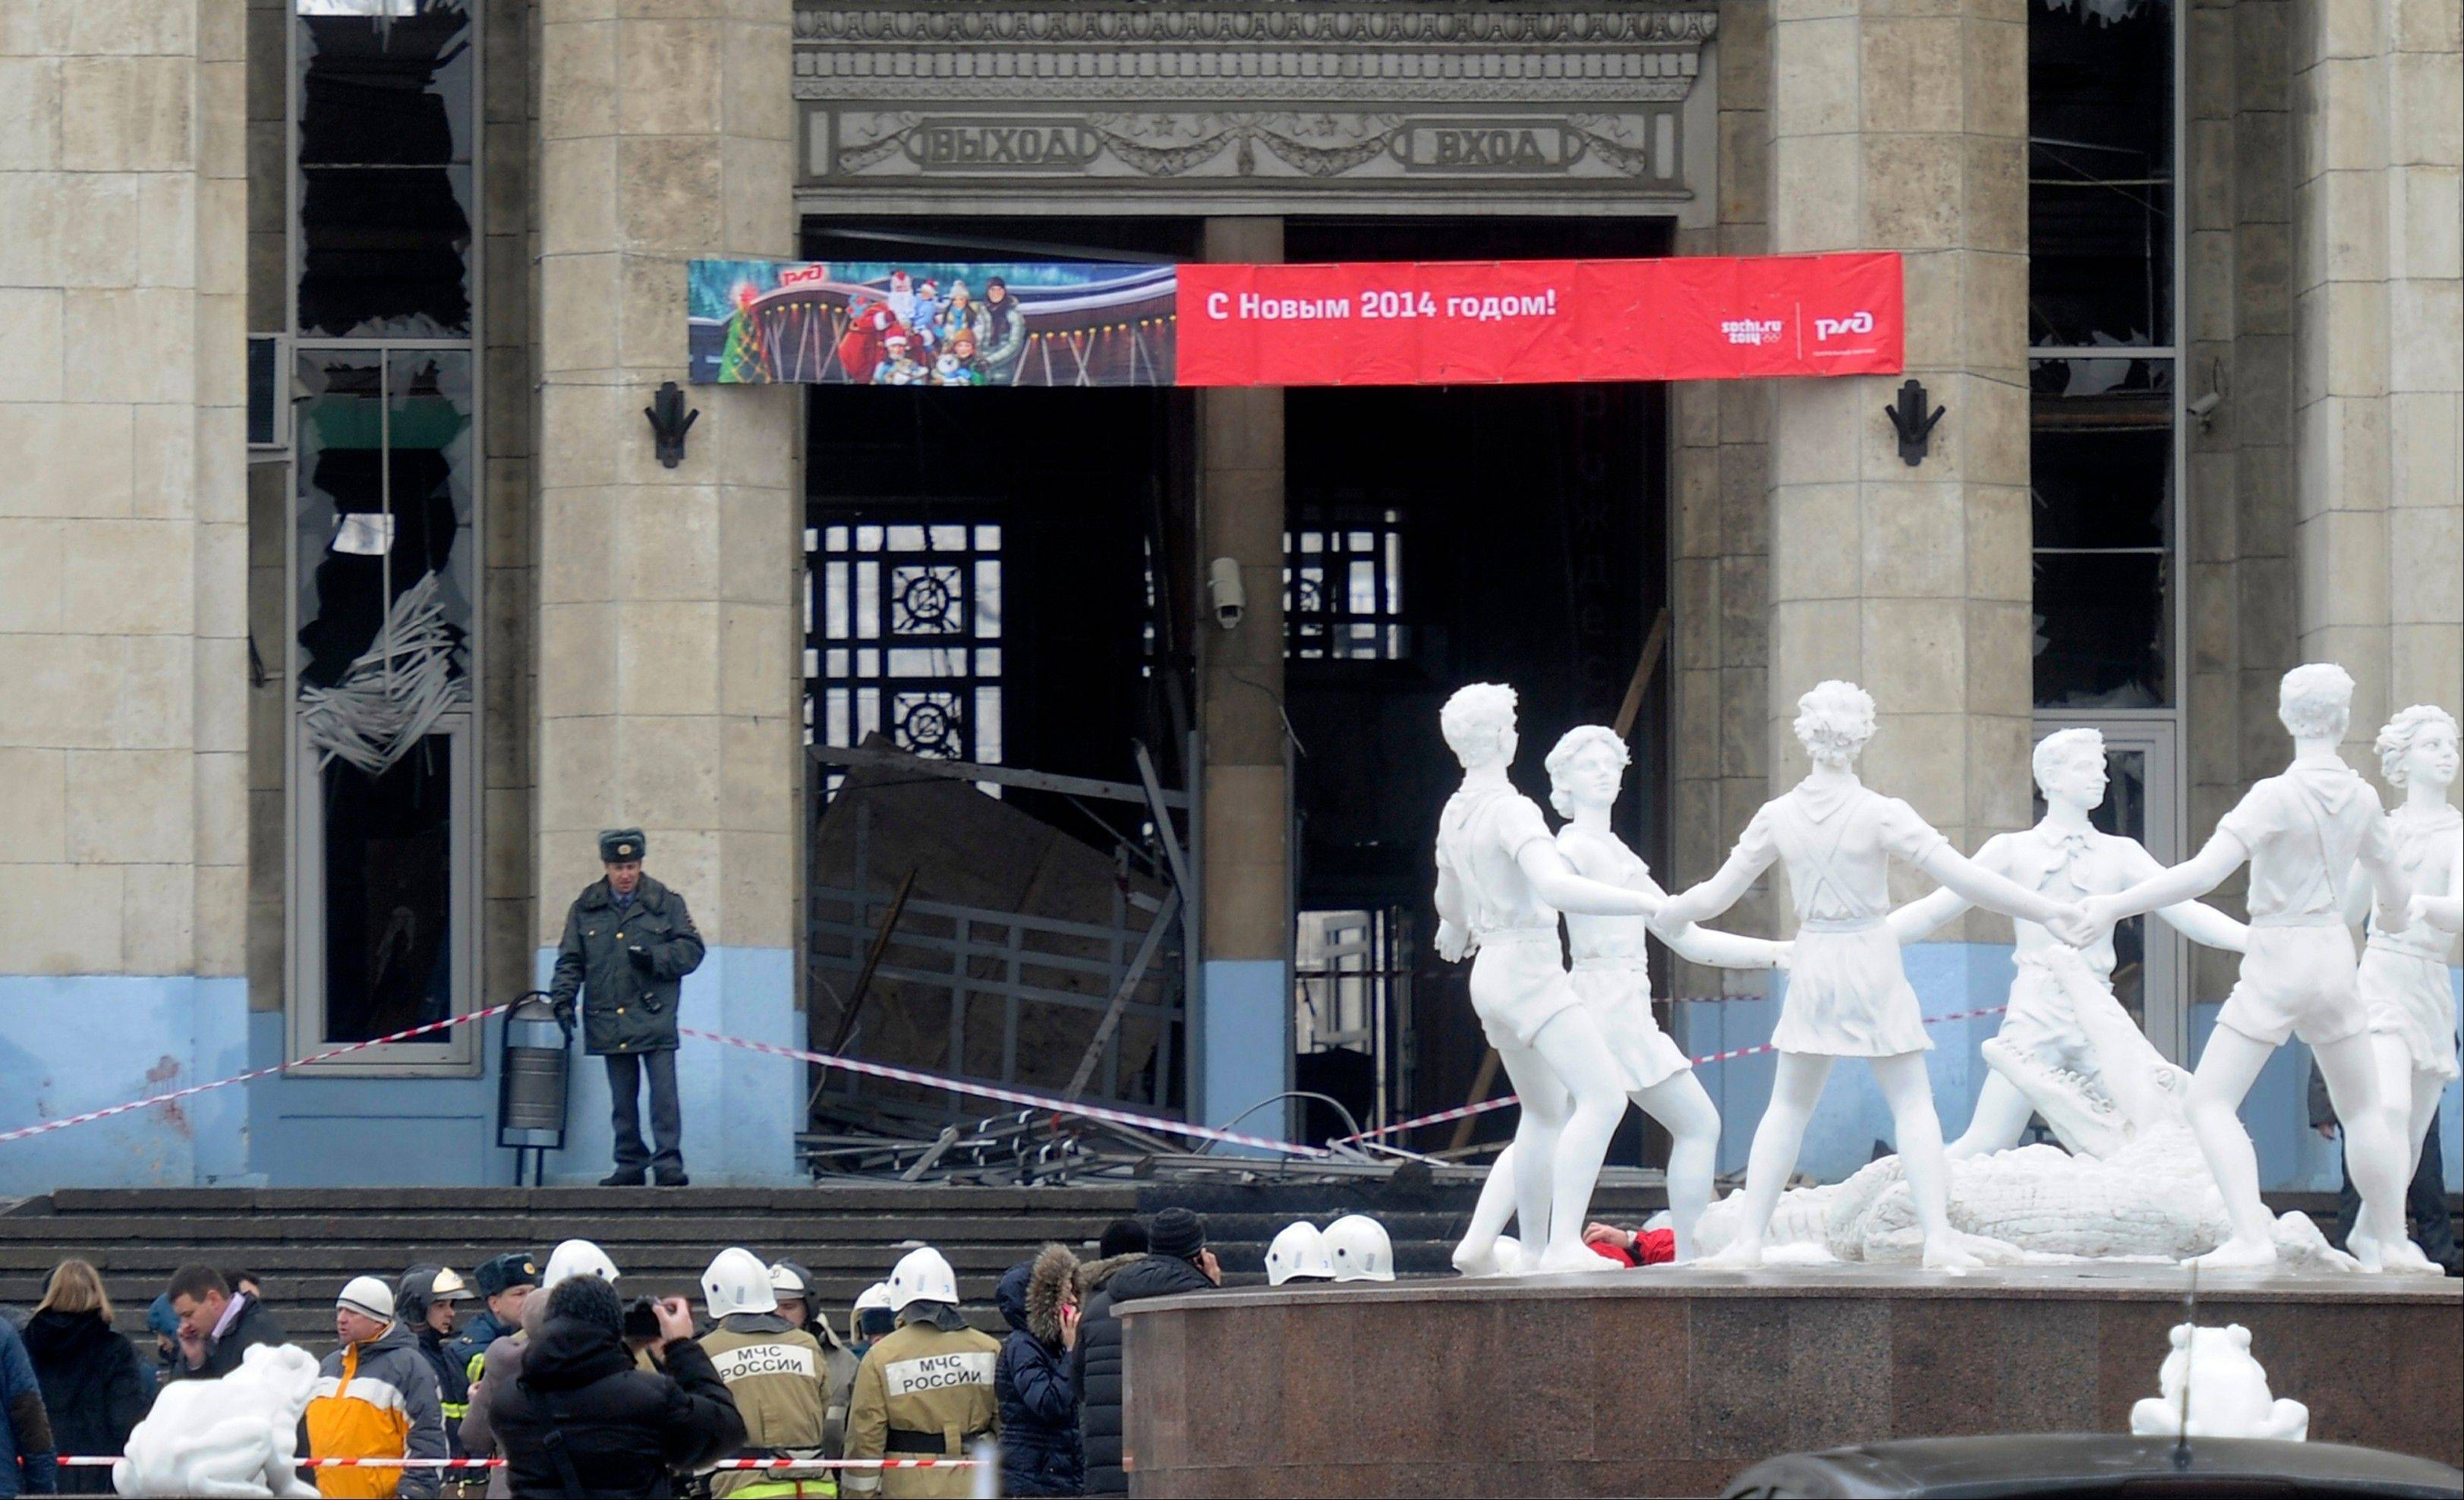 A police officer guards a main entrance to the Volgograd railway station hit by an explosion Sunday in Volgograd, Russia. More than a dozen people were killed and scores were wounded Sunday by a female suicide bomber at a railway station in southern Russia, officials said, heightening concern about terrorism ahead of February's Olympics in the Black Sea resort of Sochi.